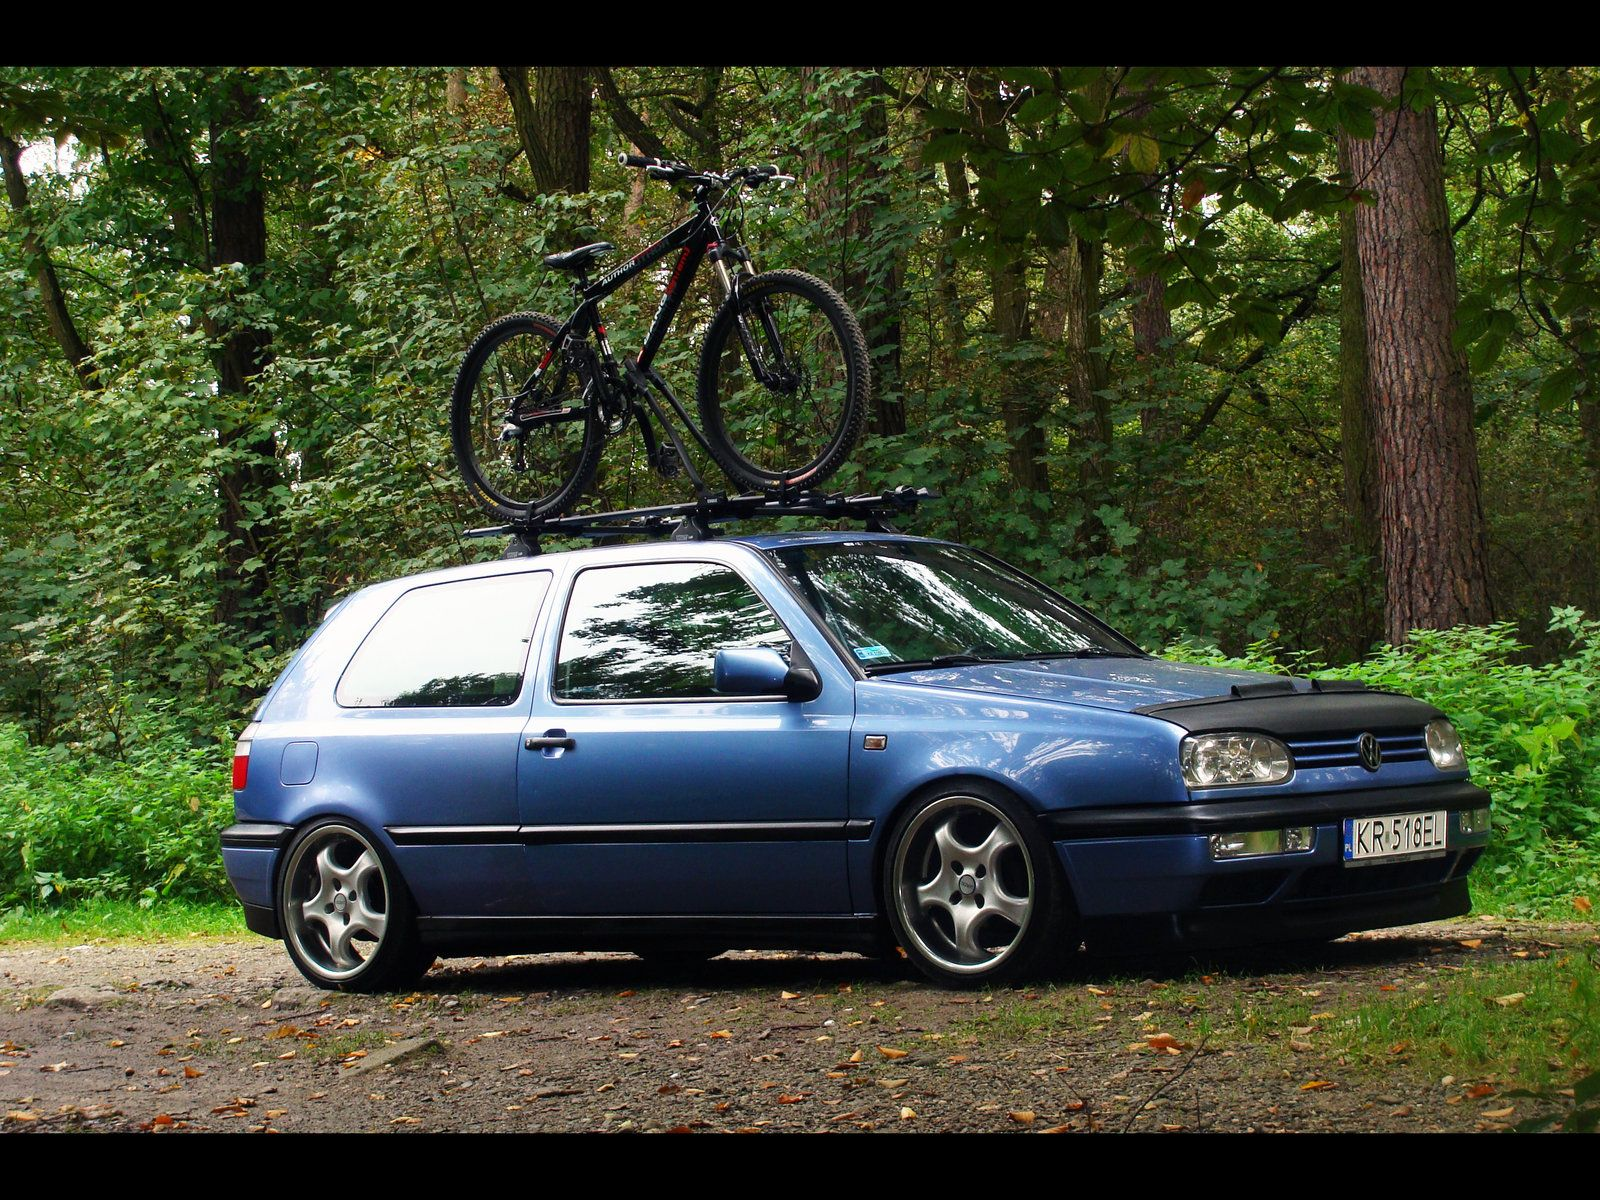 3-4 light blue mk3 - so I